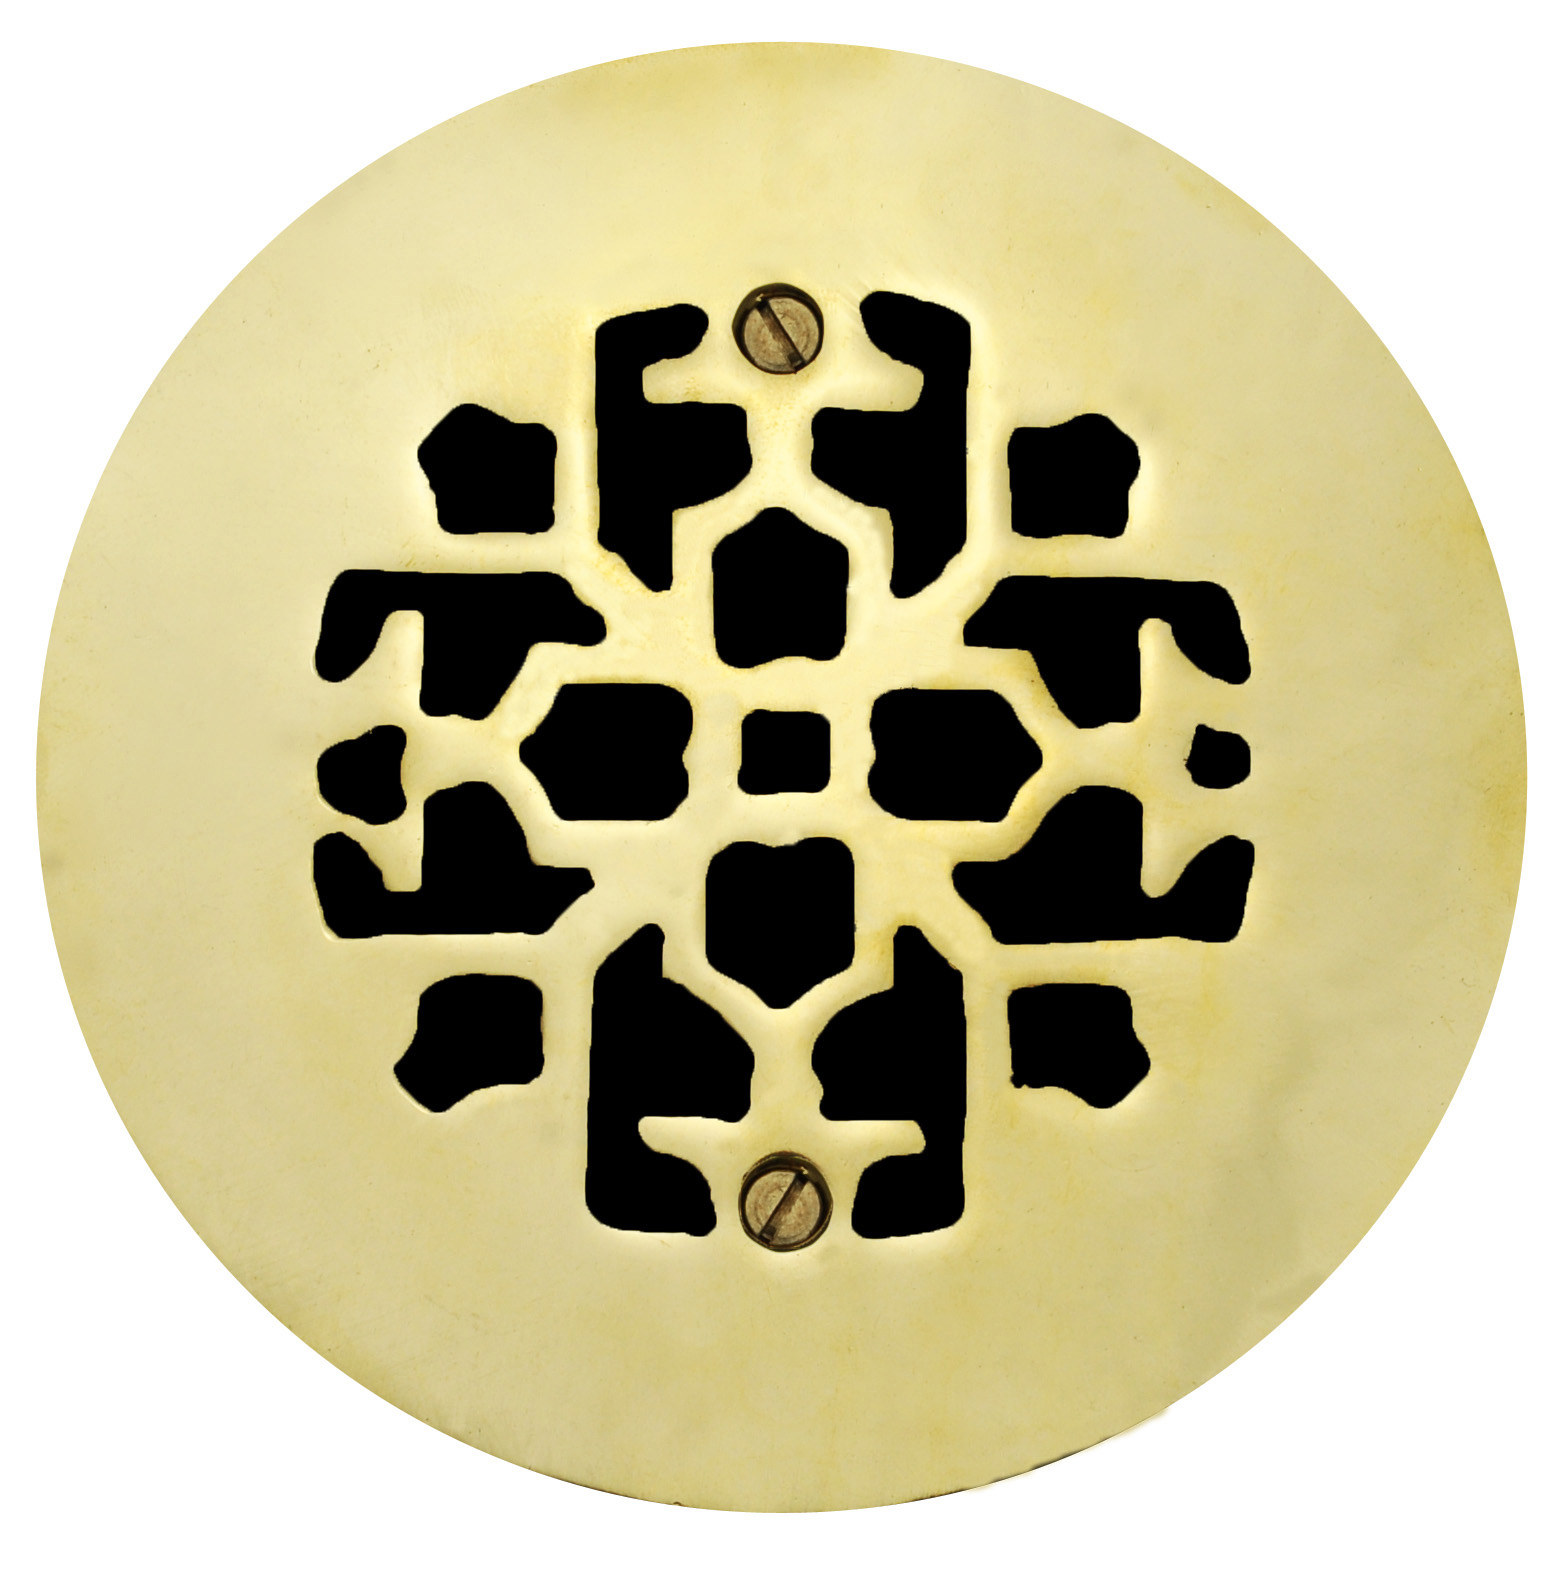 Brass Round Floor, Ceiling, or Wall Grates for Air or Heat Vent  Register  Covers Without Dampers, 4